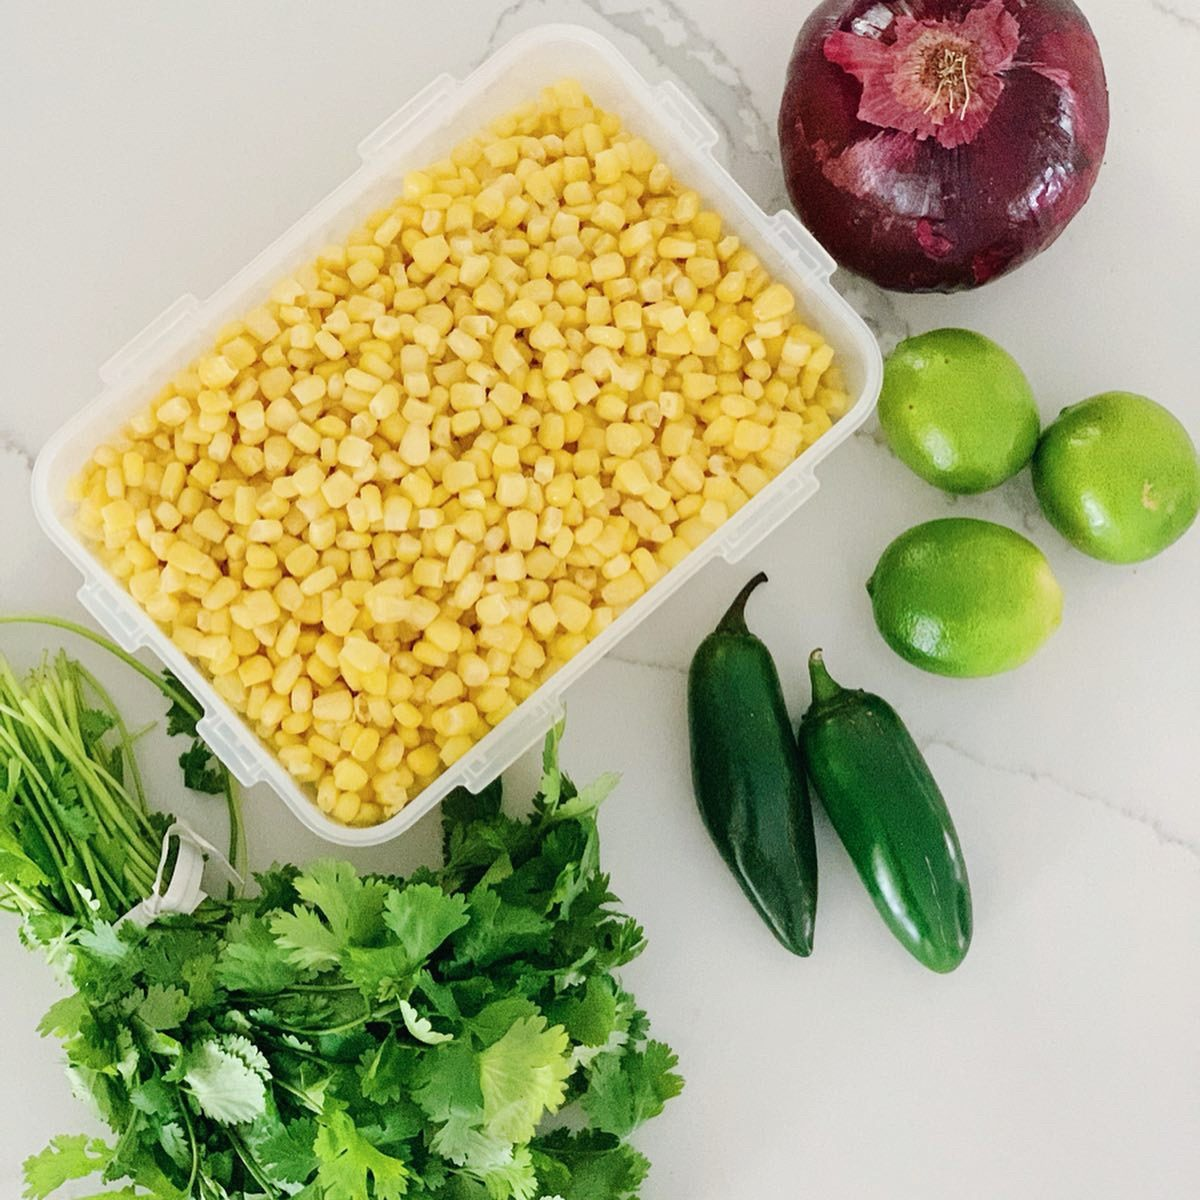 Fresh corn, red onion, limes, jalapeños, and cilantro all come together to make a delicious corn salsa